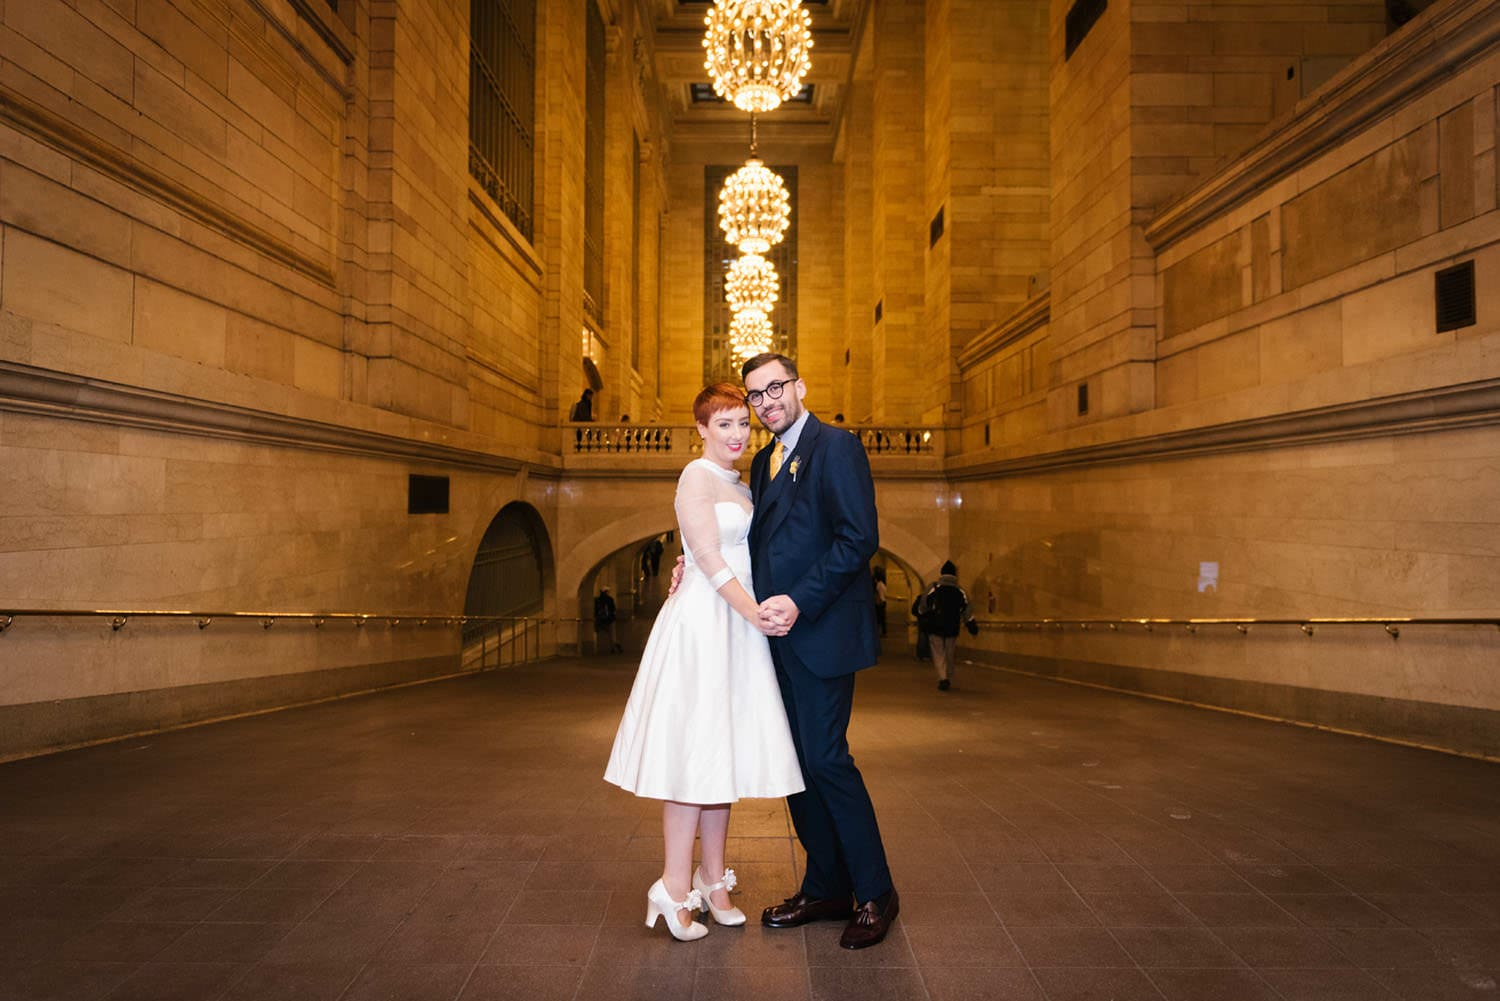 Grand Central wedding photos NYC